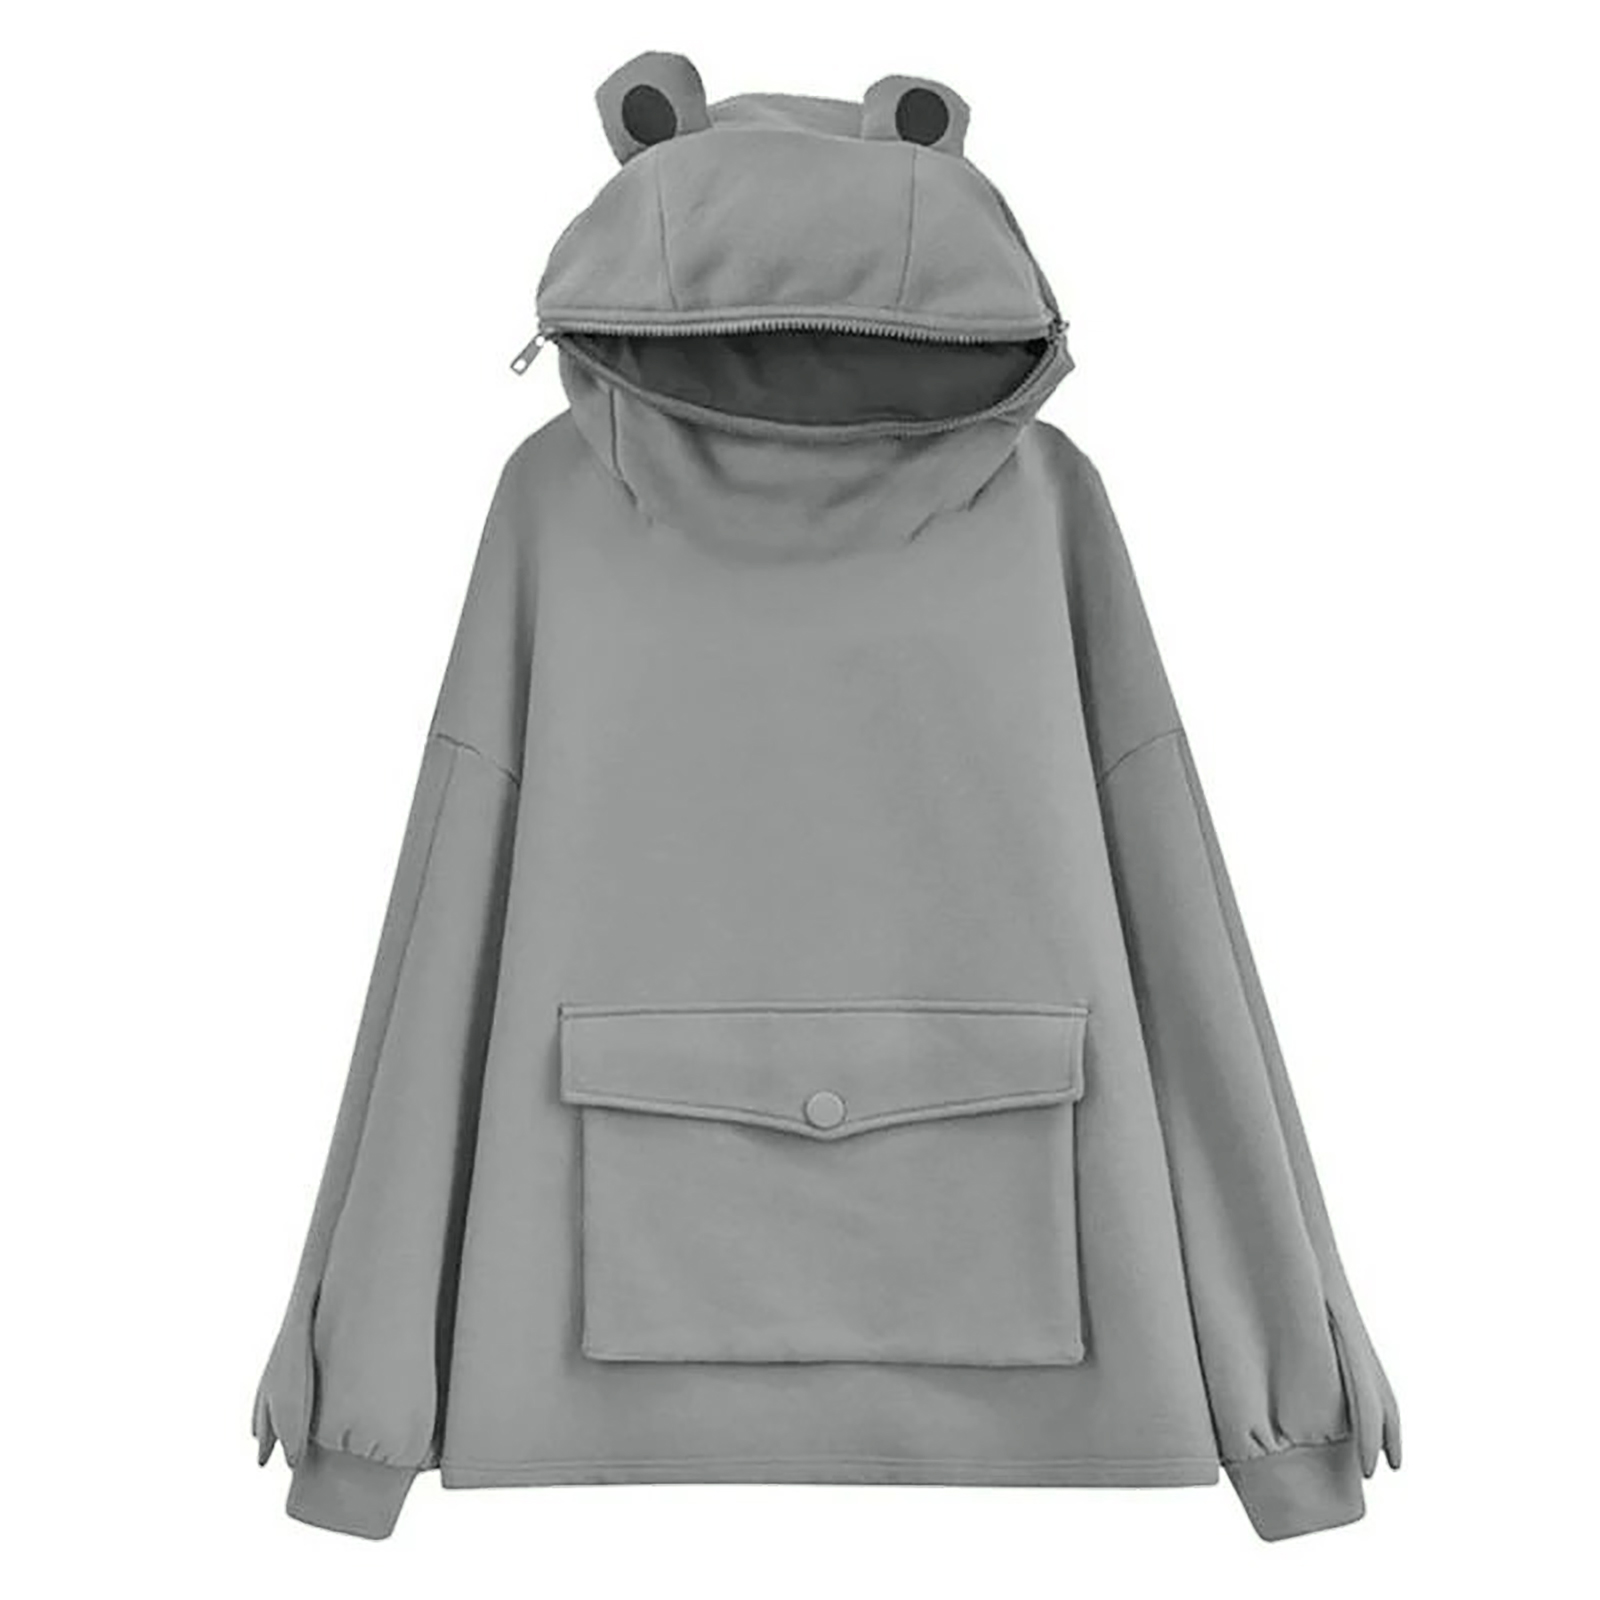 Cute Hoodies for Women Frog Print Sweatshirt Fashion Stitching Pullover Long Sleeve Casual Tops